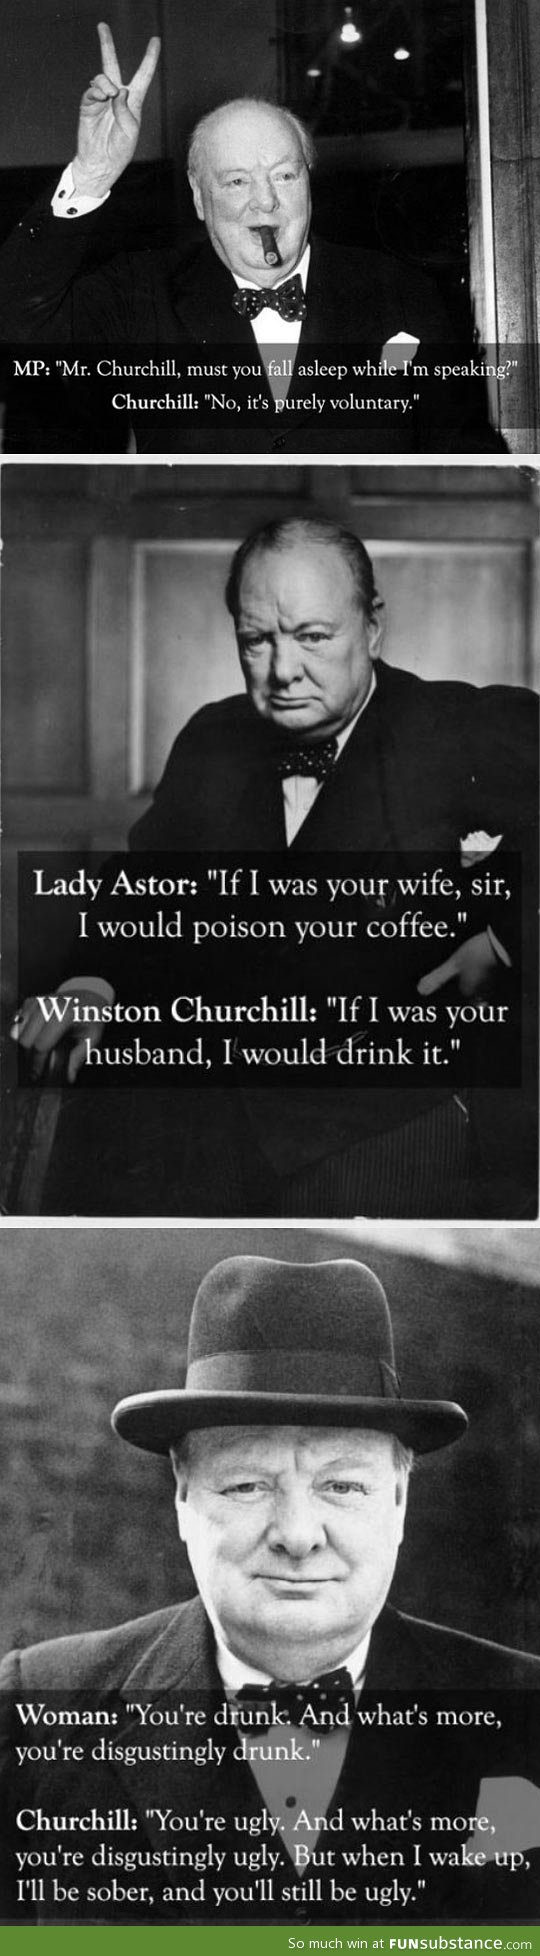 Churchill was a boss